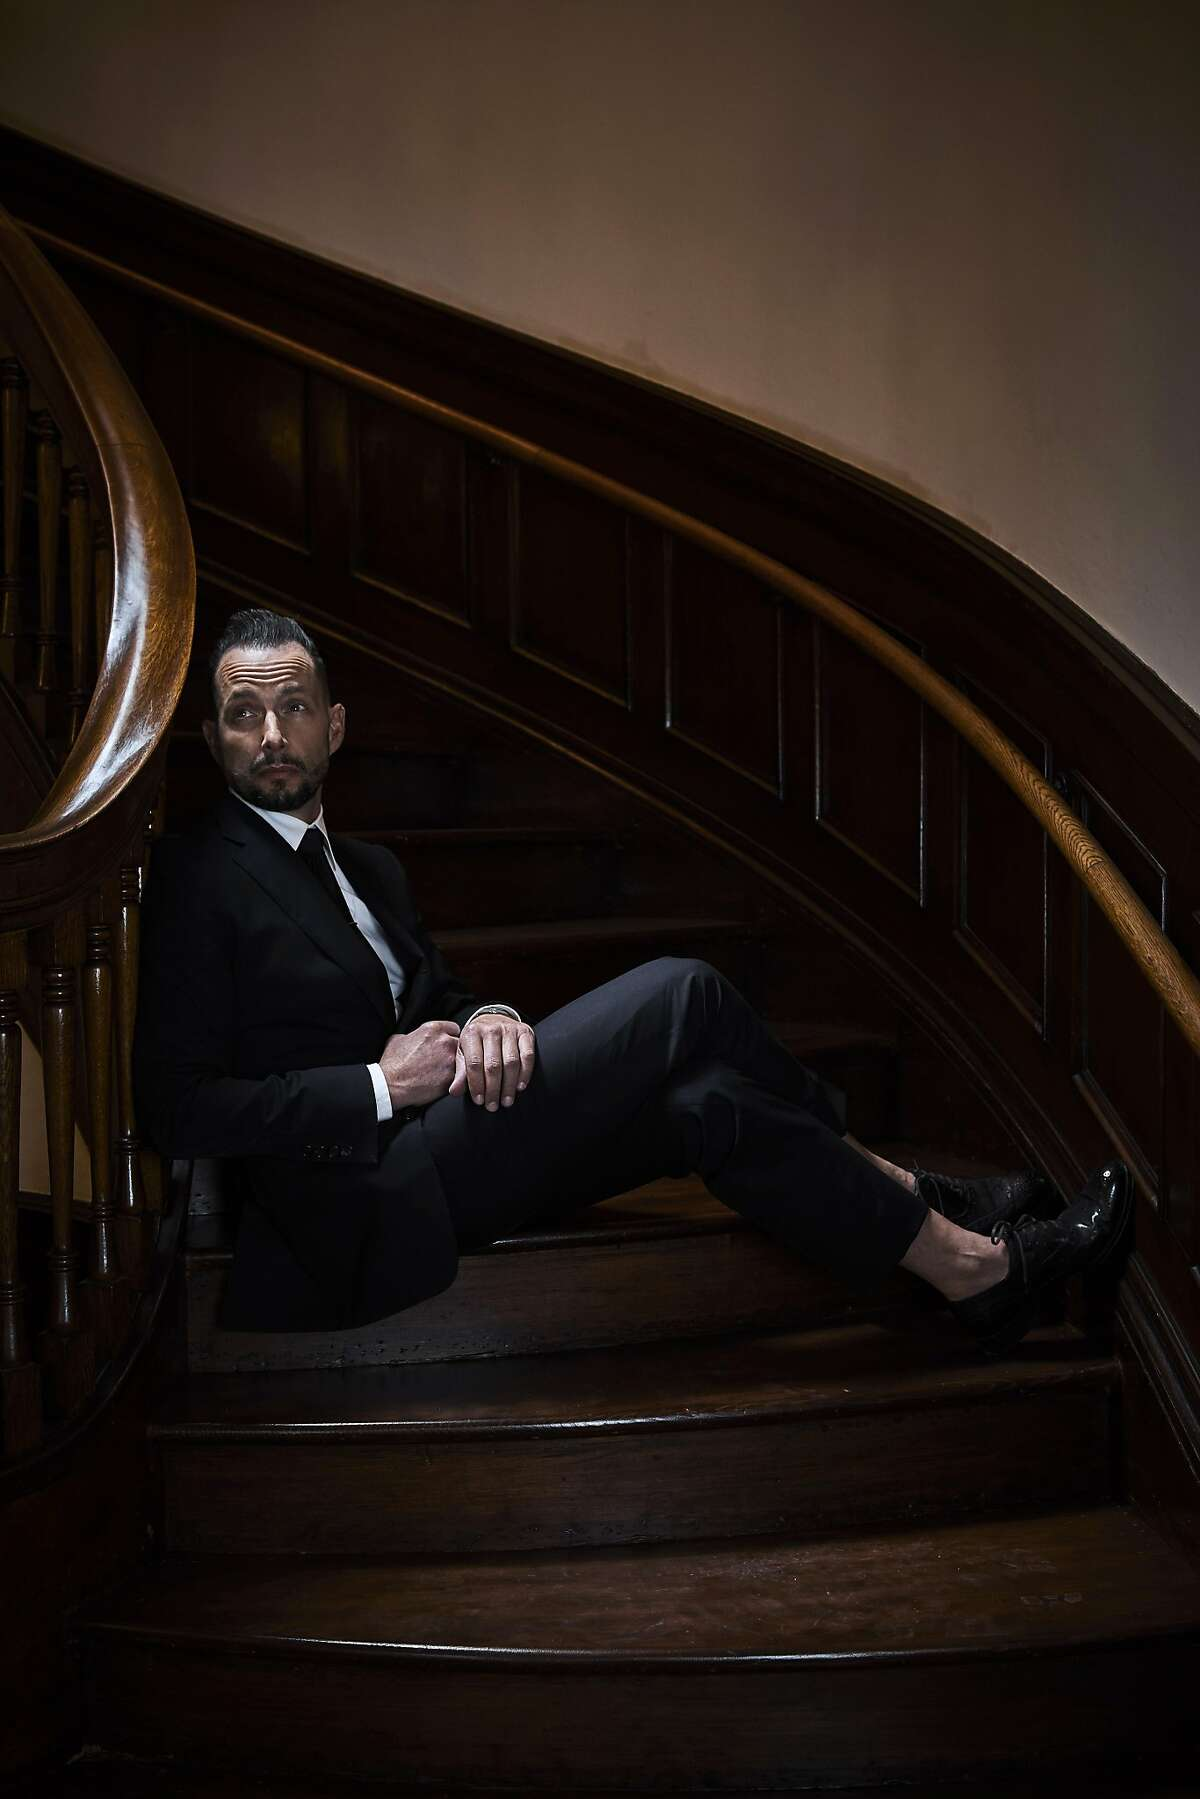 Jeremy Kidson, owner of designer discount store Jeremy's, photographed on the grand staircase inside his new store in an old church in downtown Oakland on Sept 16, 2016.